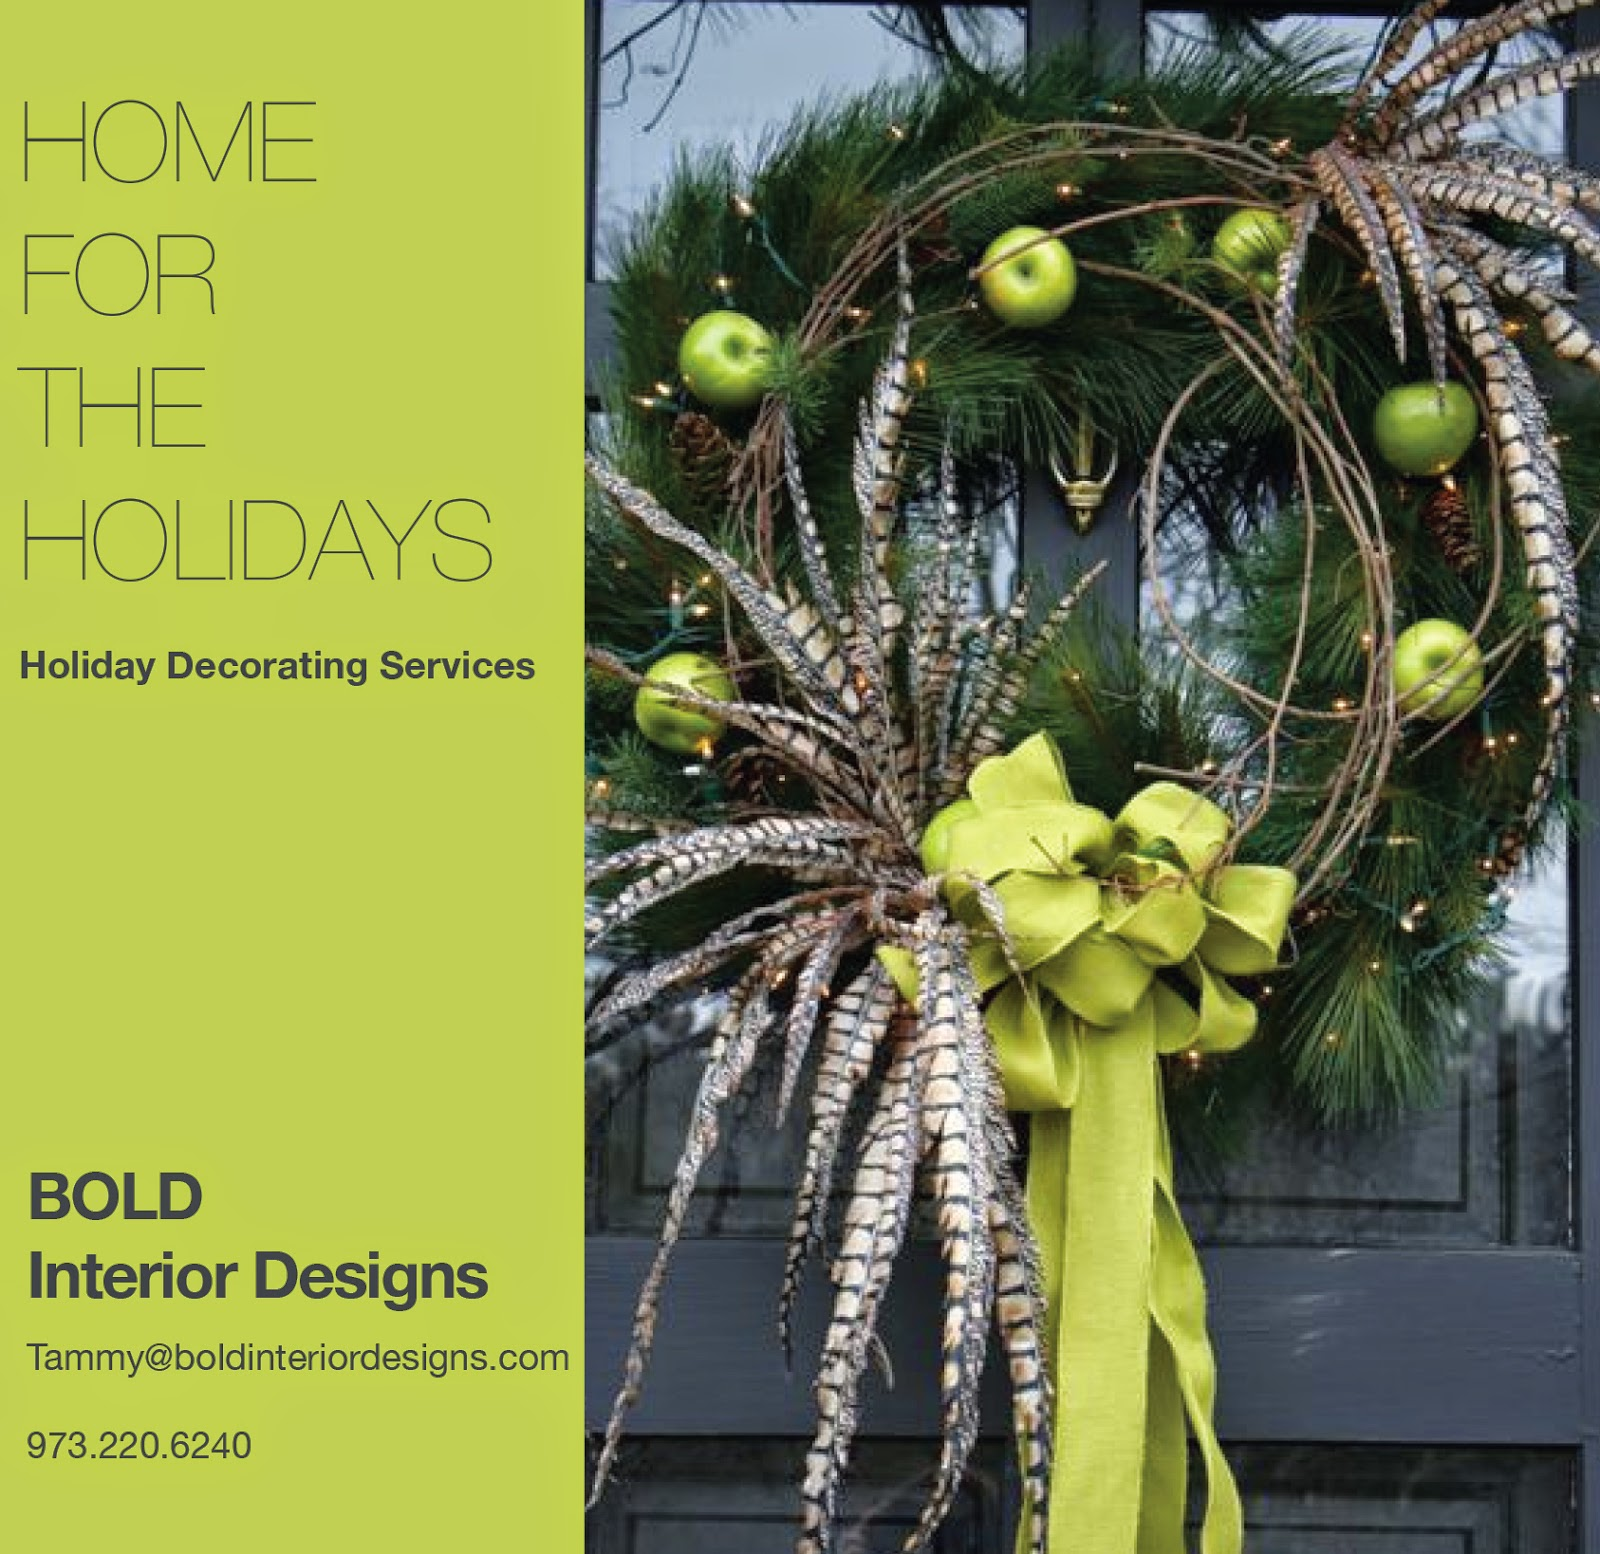 The Bold And The Beautiful Holiday Decorating Services